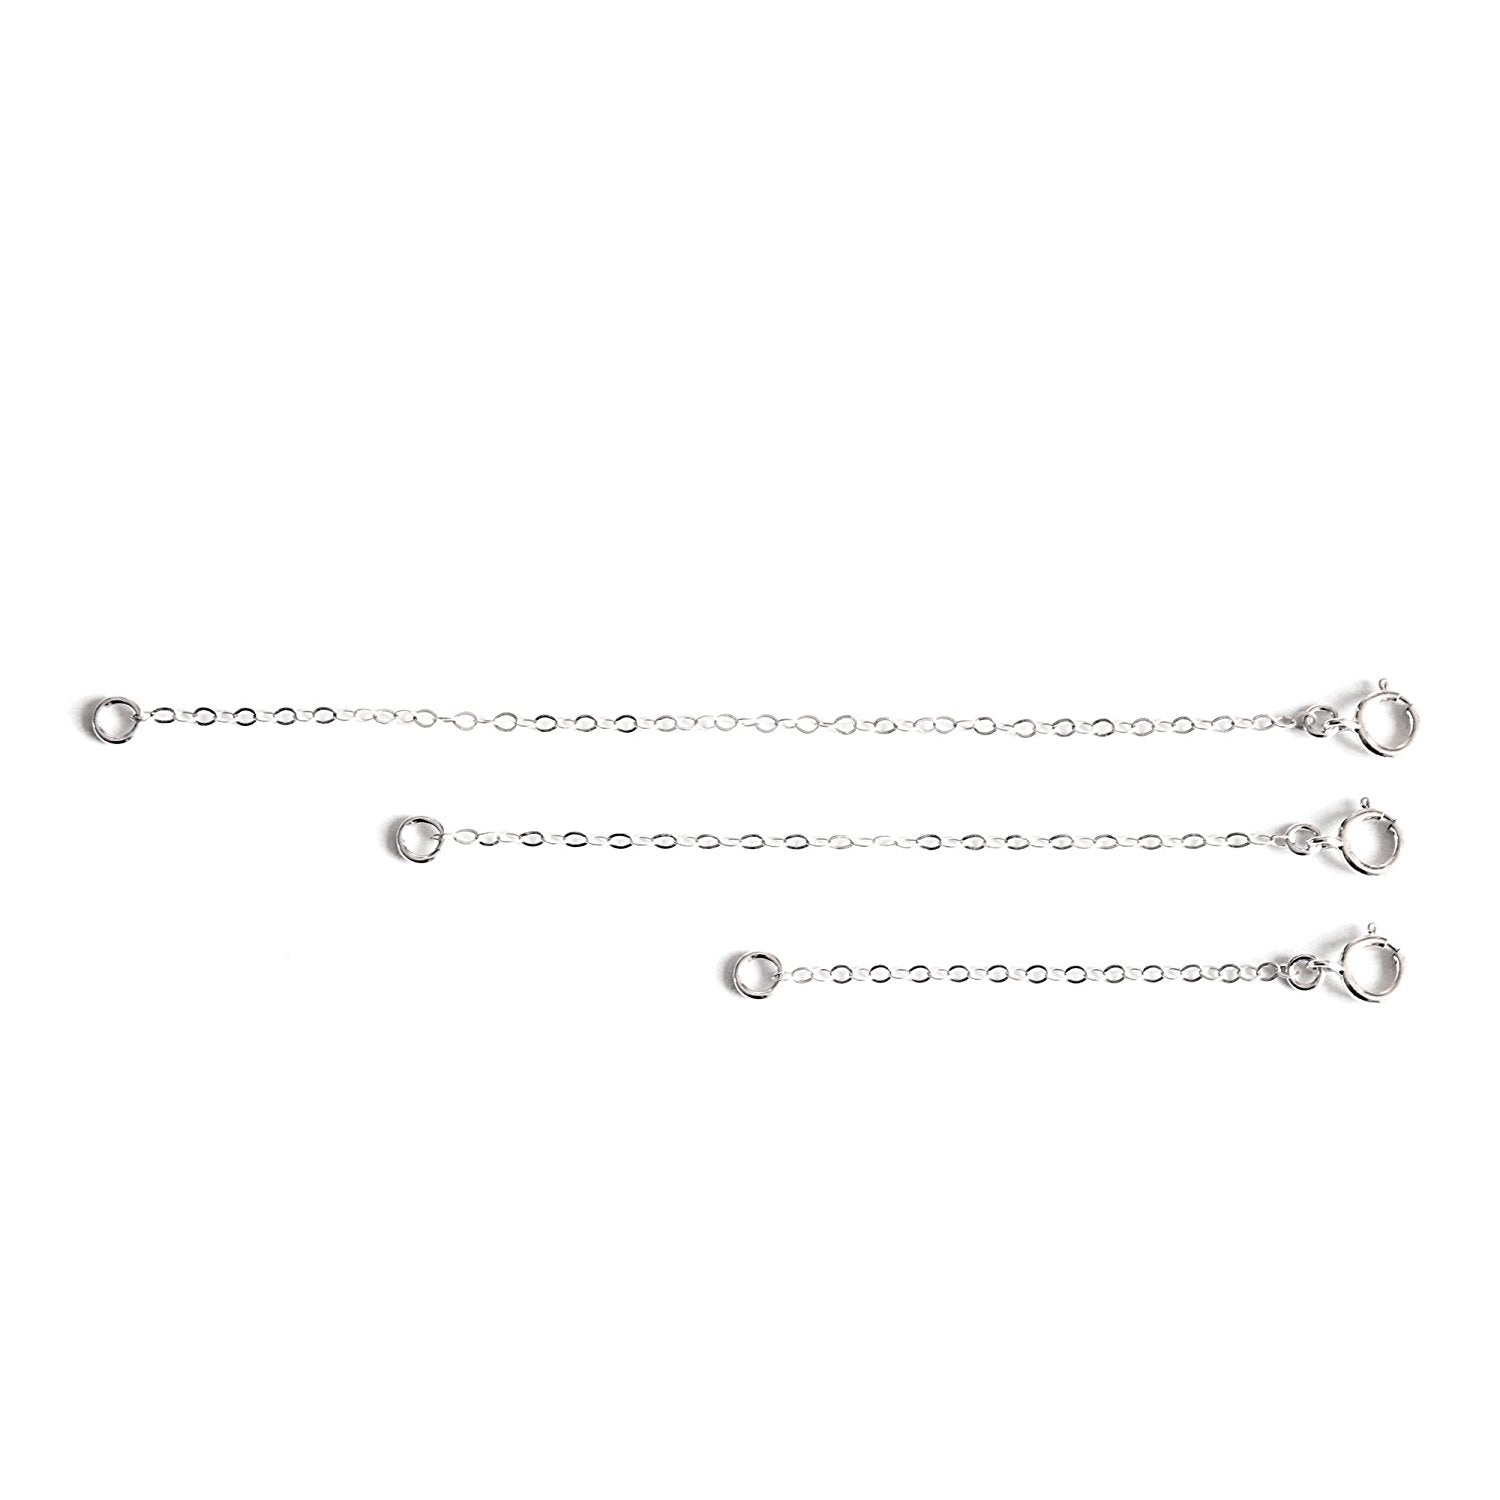 Necklace Extender Chain - 3 Piece Set - 2